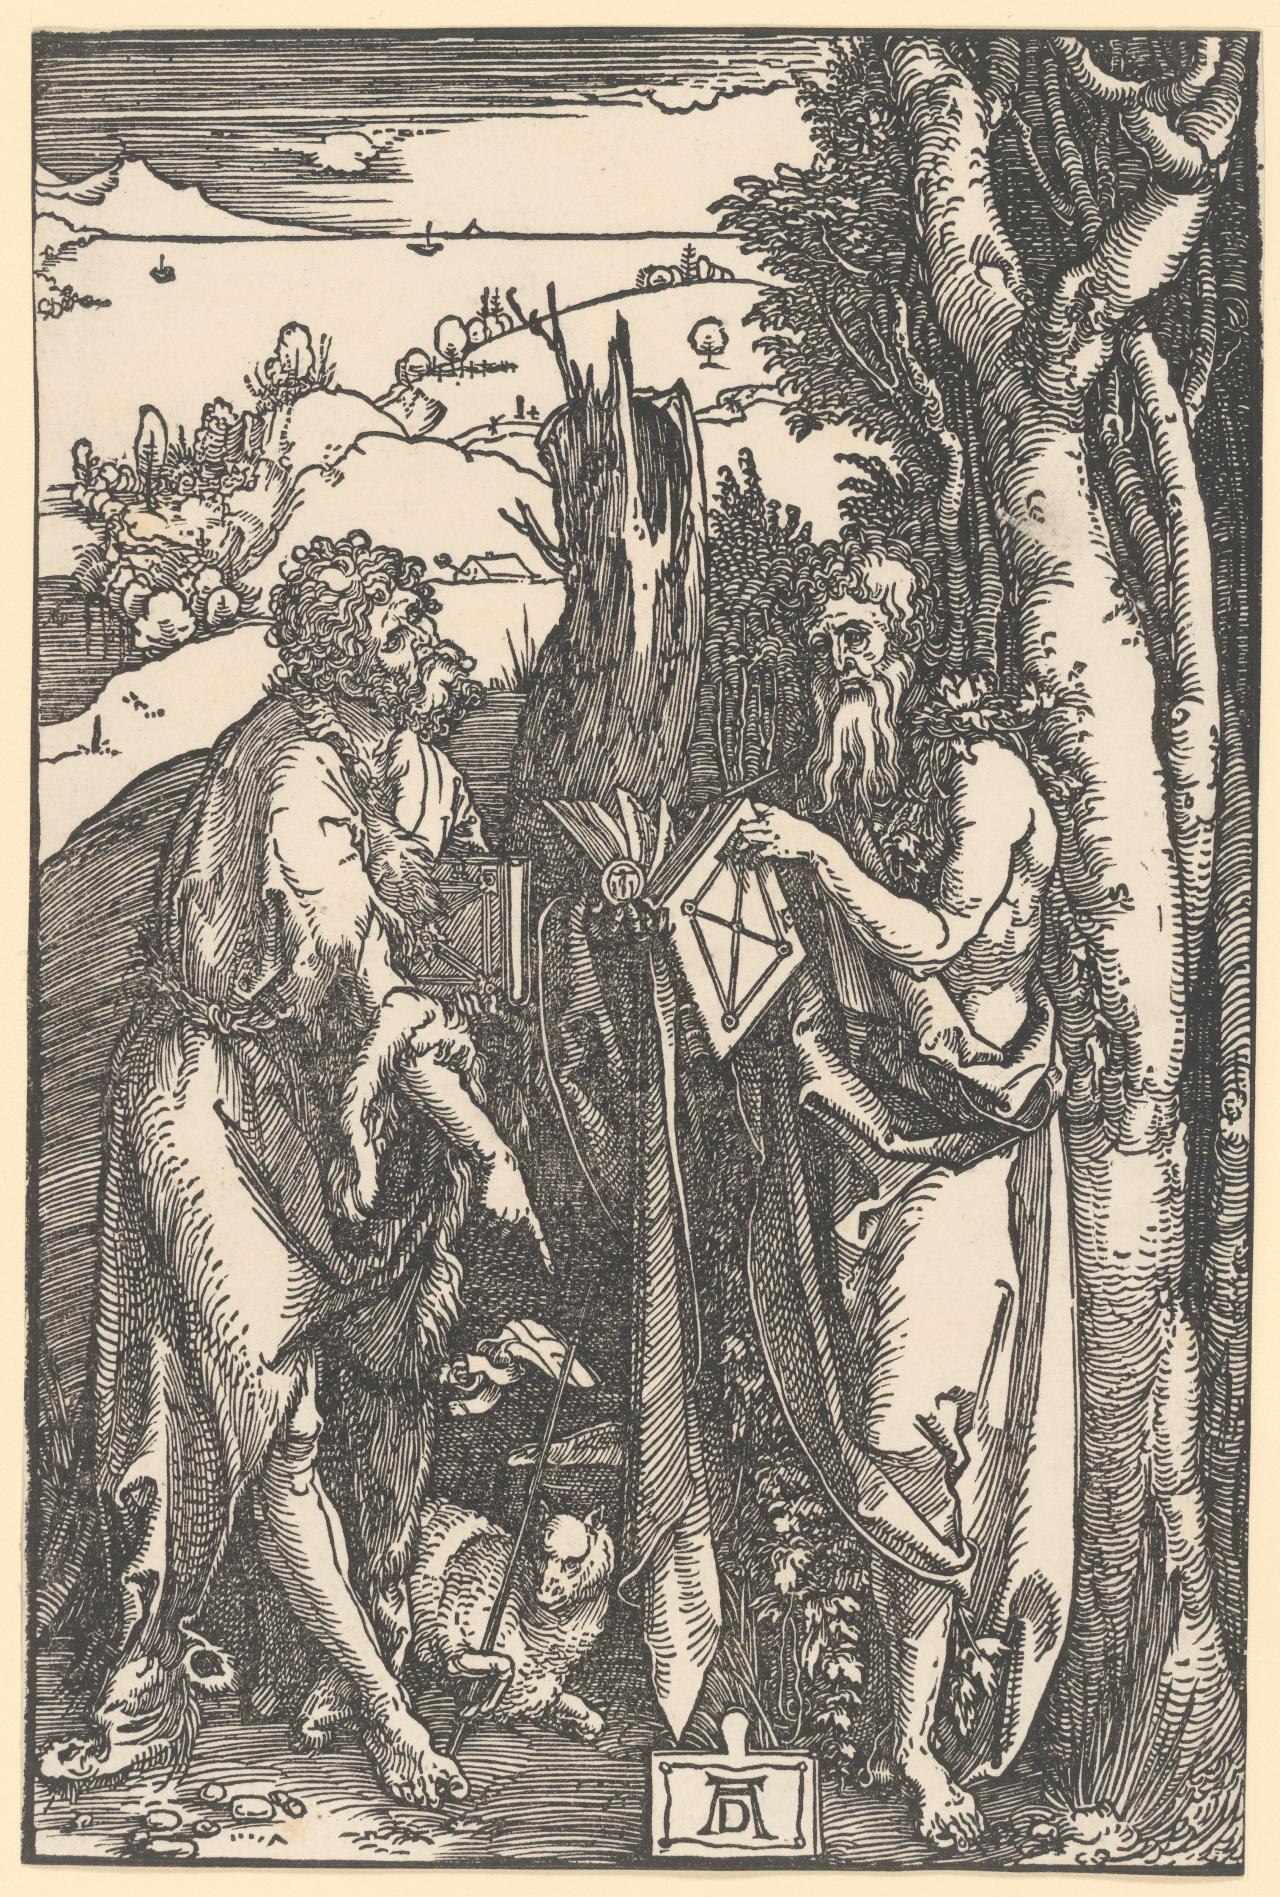 John the Baptist and Saint Onuphrius in the Wilderness